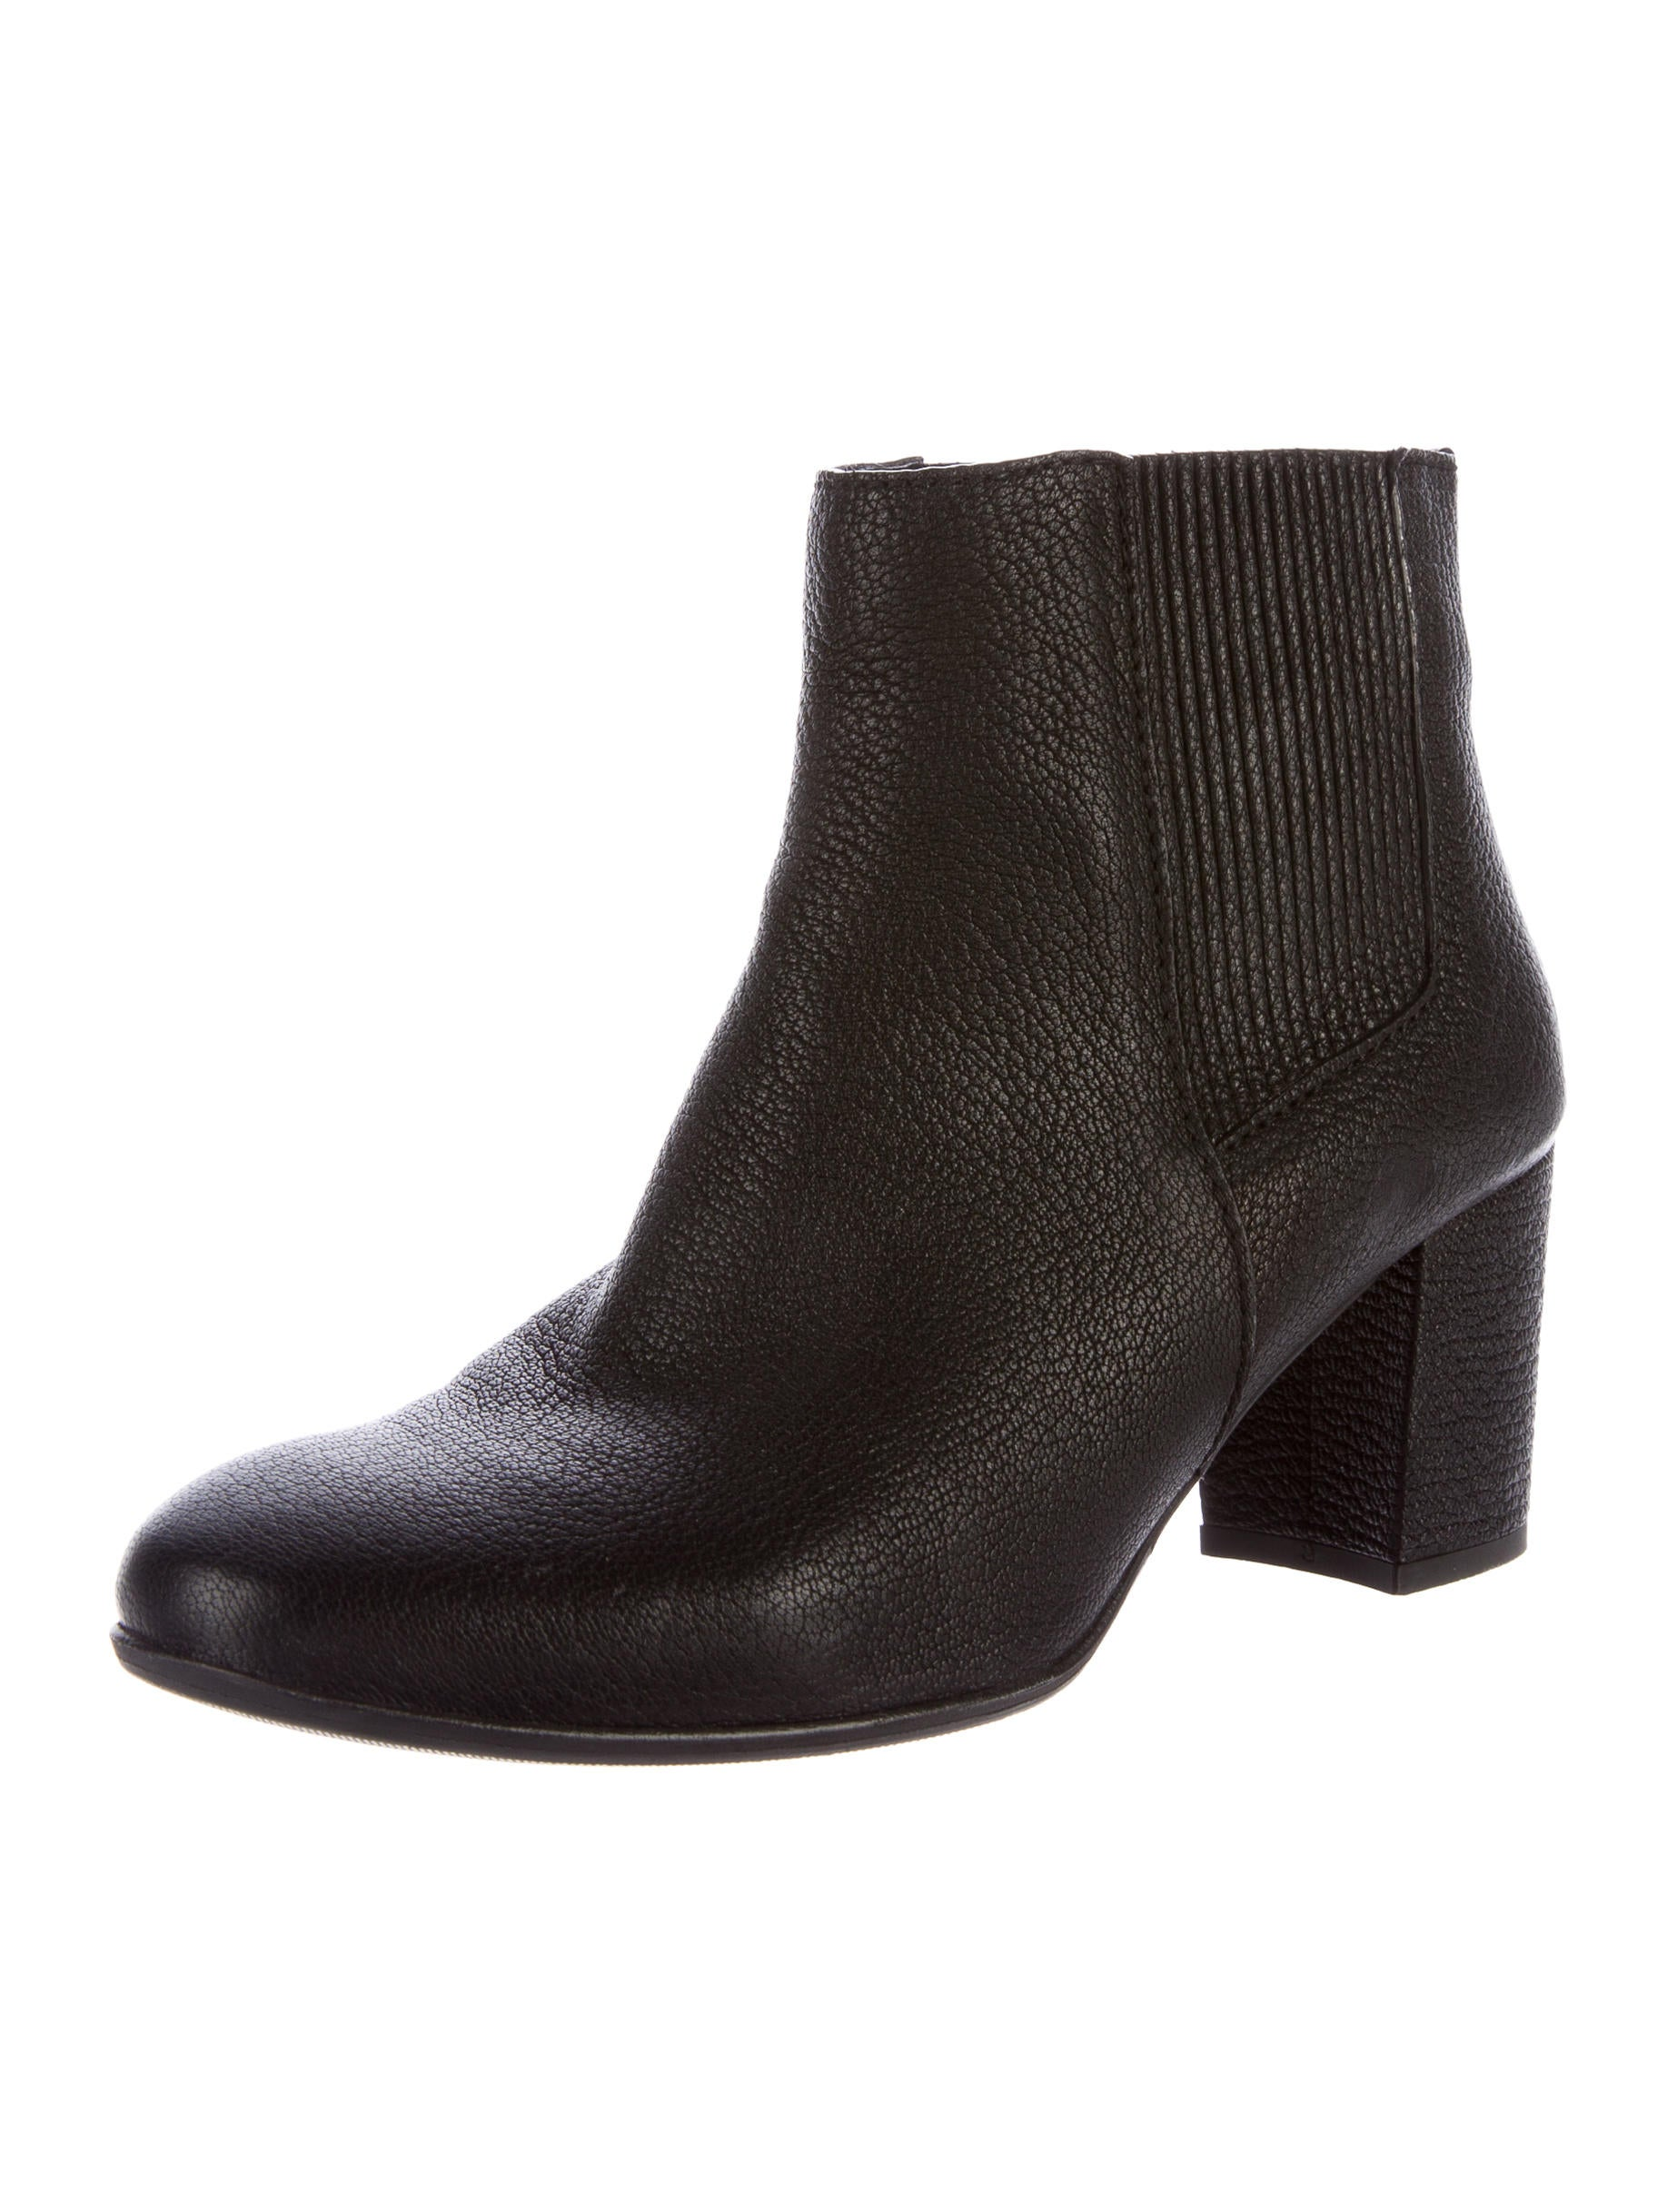 pedro garcia leather ankle boots shoes ped23528 the